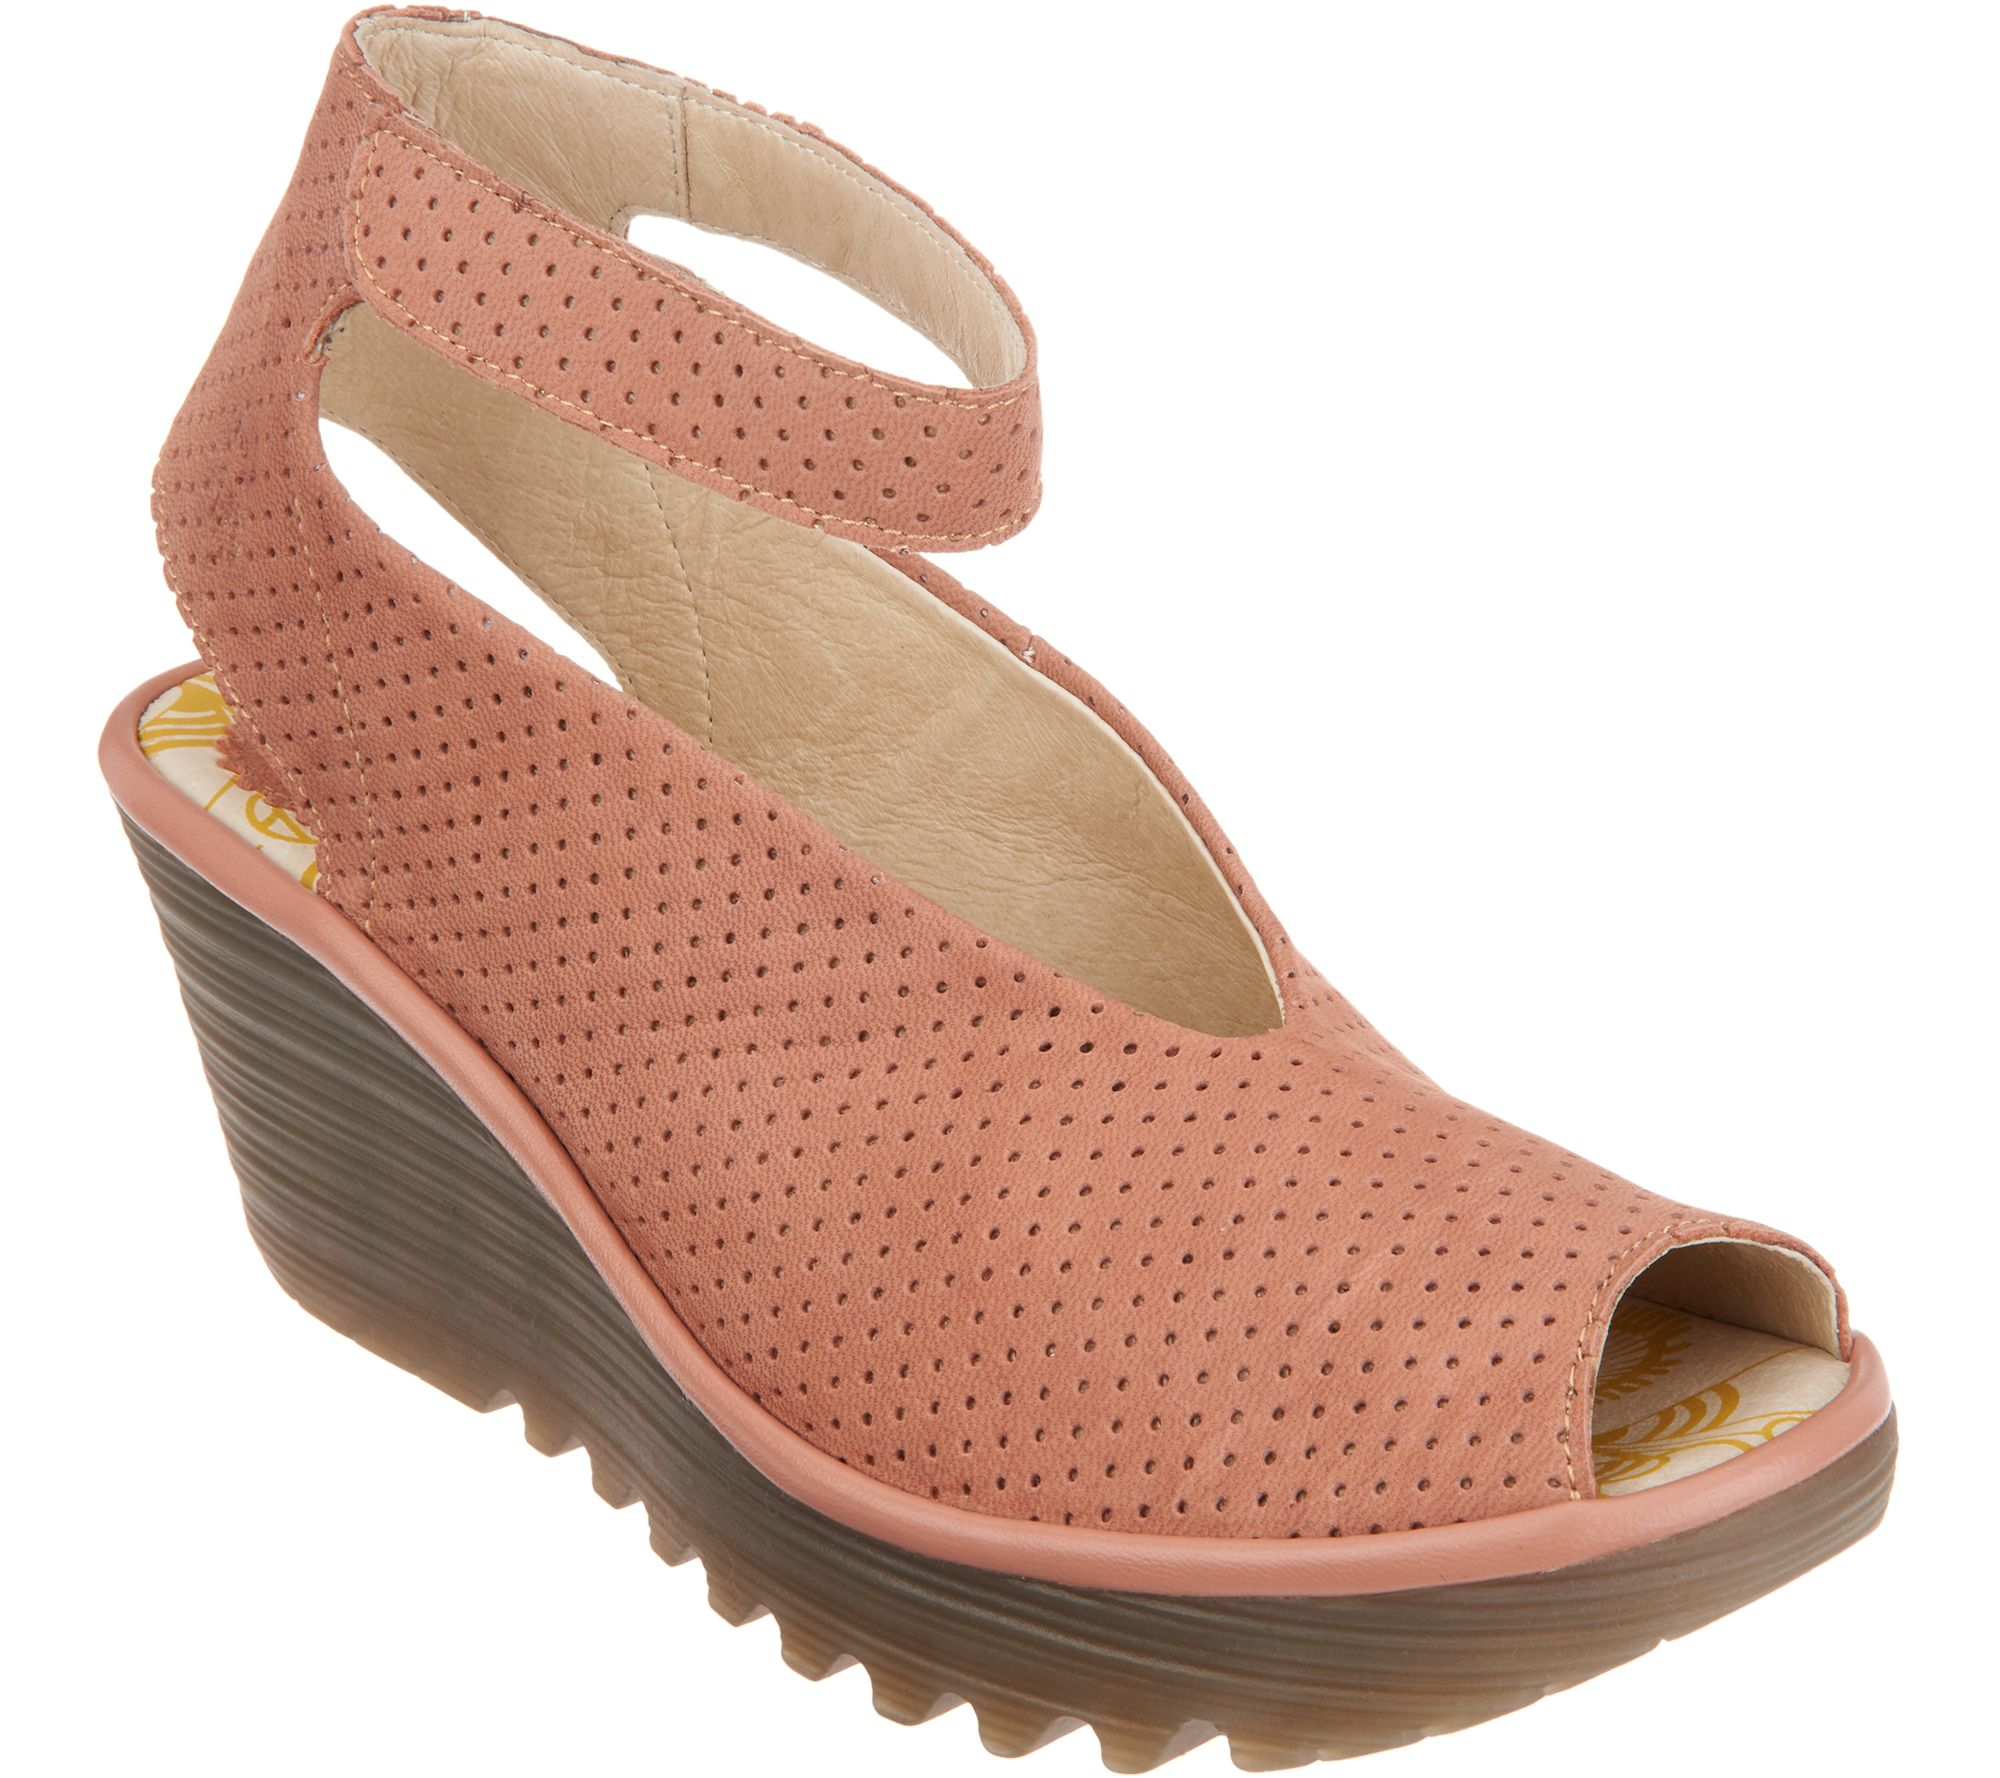 2d8a5be16d7 FLY London Perforated Leather Wedge Sandals - Yala Perf - Page 1 — QVC.com